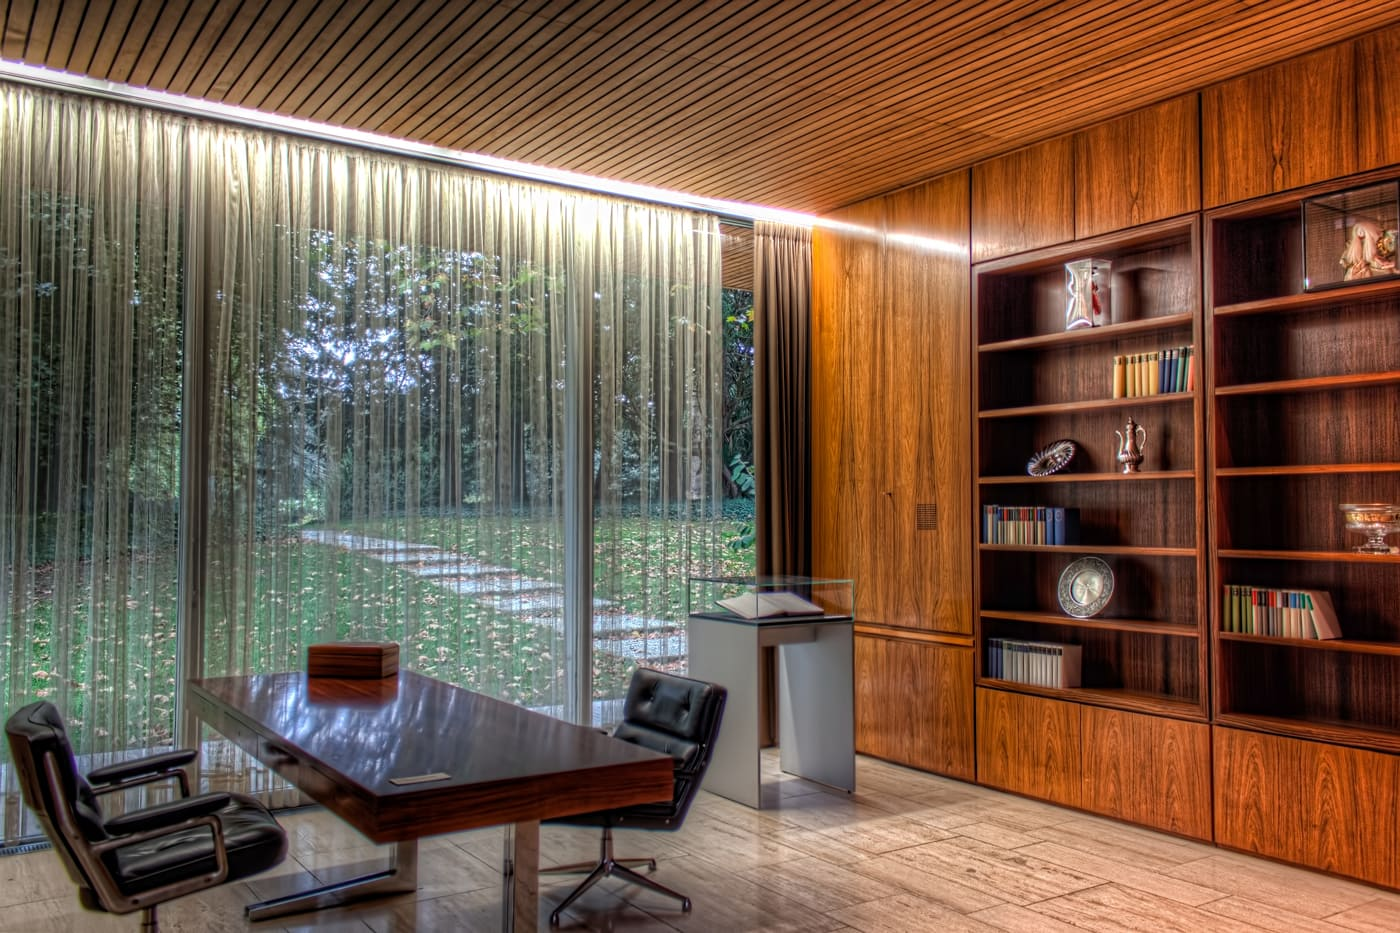 Office of the German Chancellor in the Bungalow in Bonn